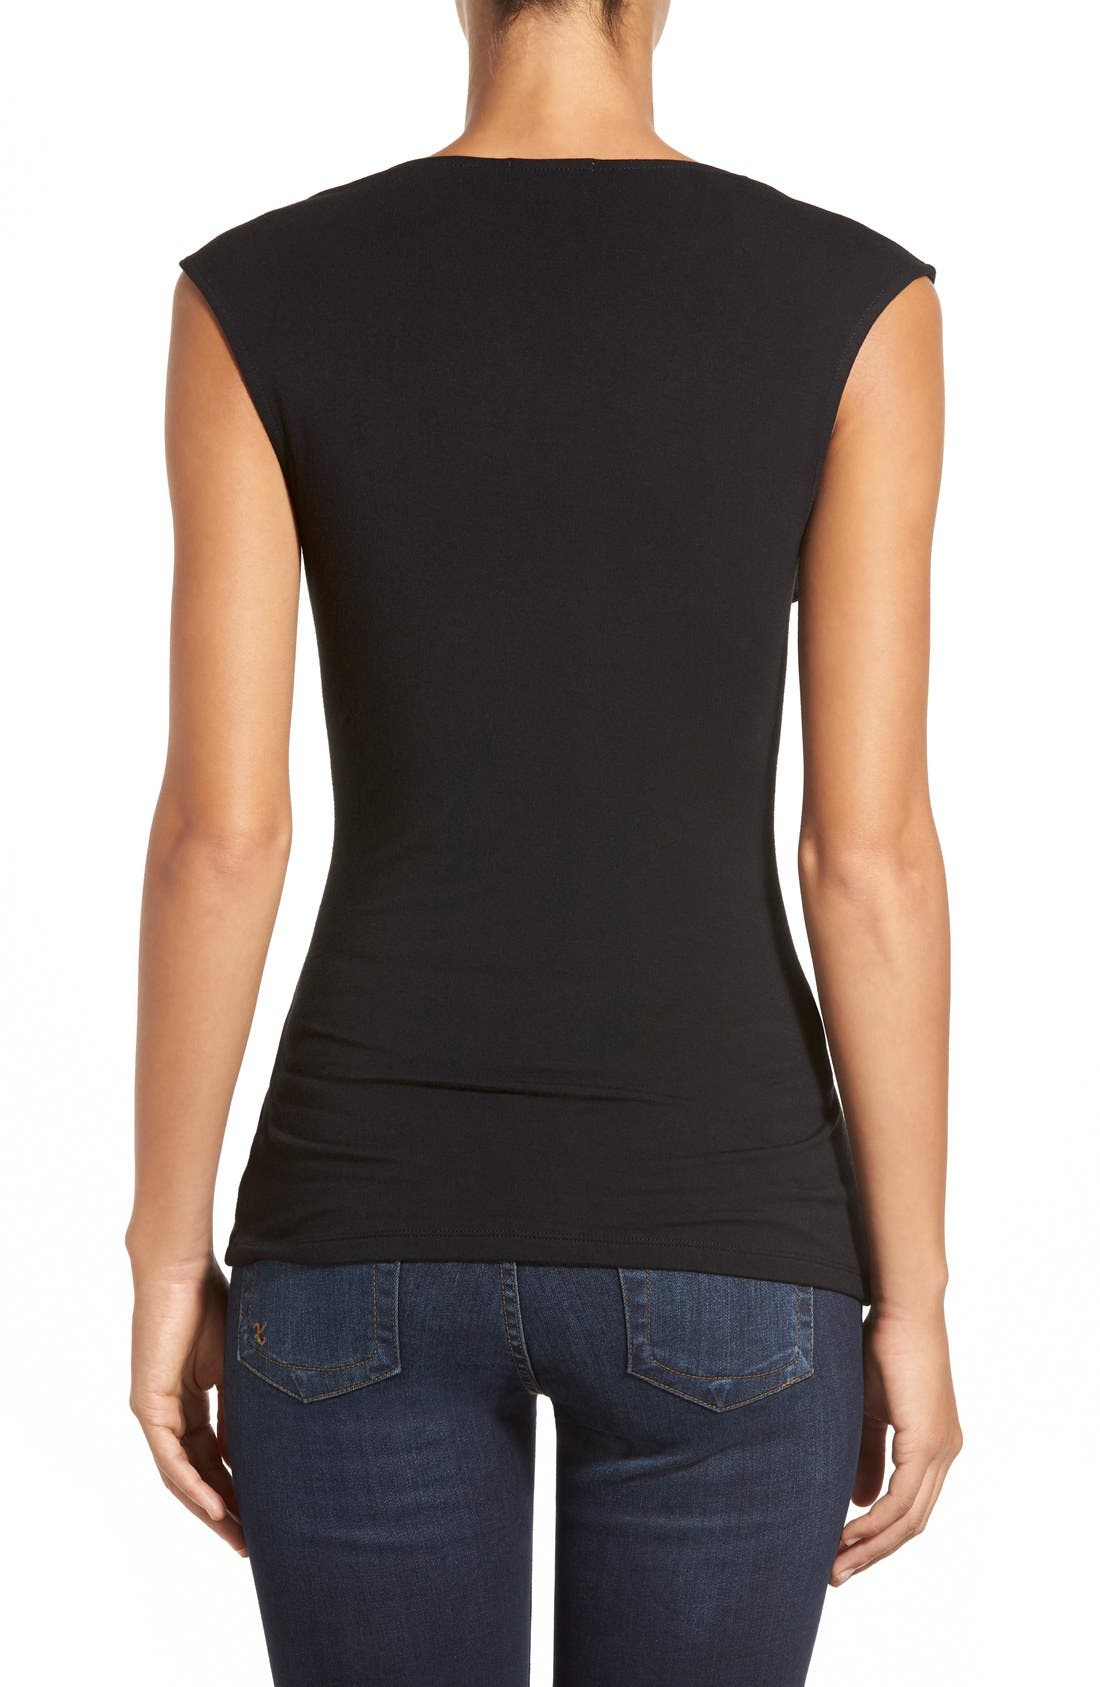 Alternate Image 2  - Halogen® Cowl Neck Sleeveless Top (Regular & Petite)